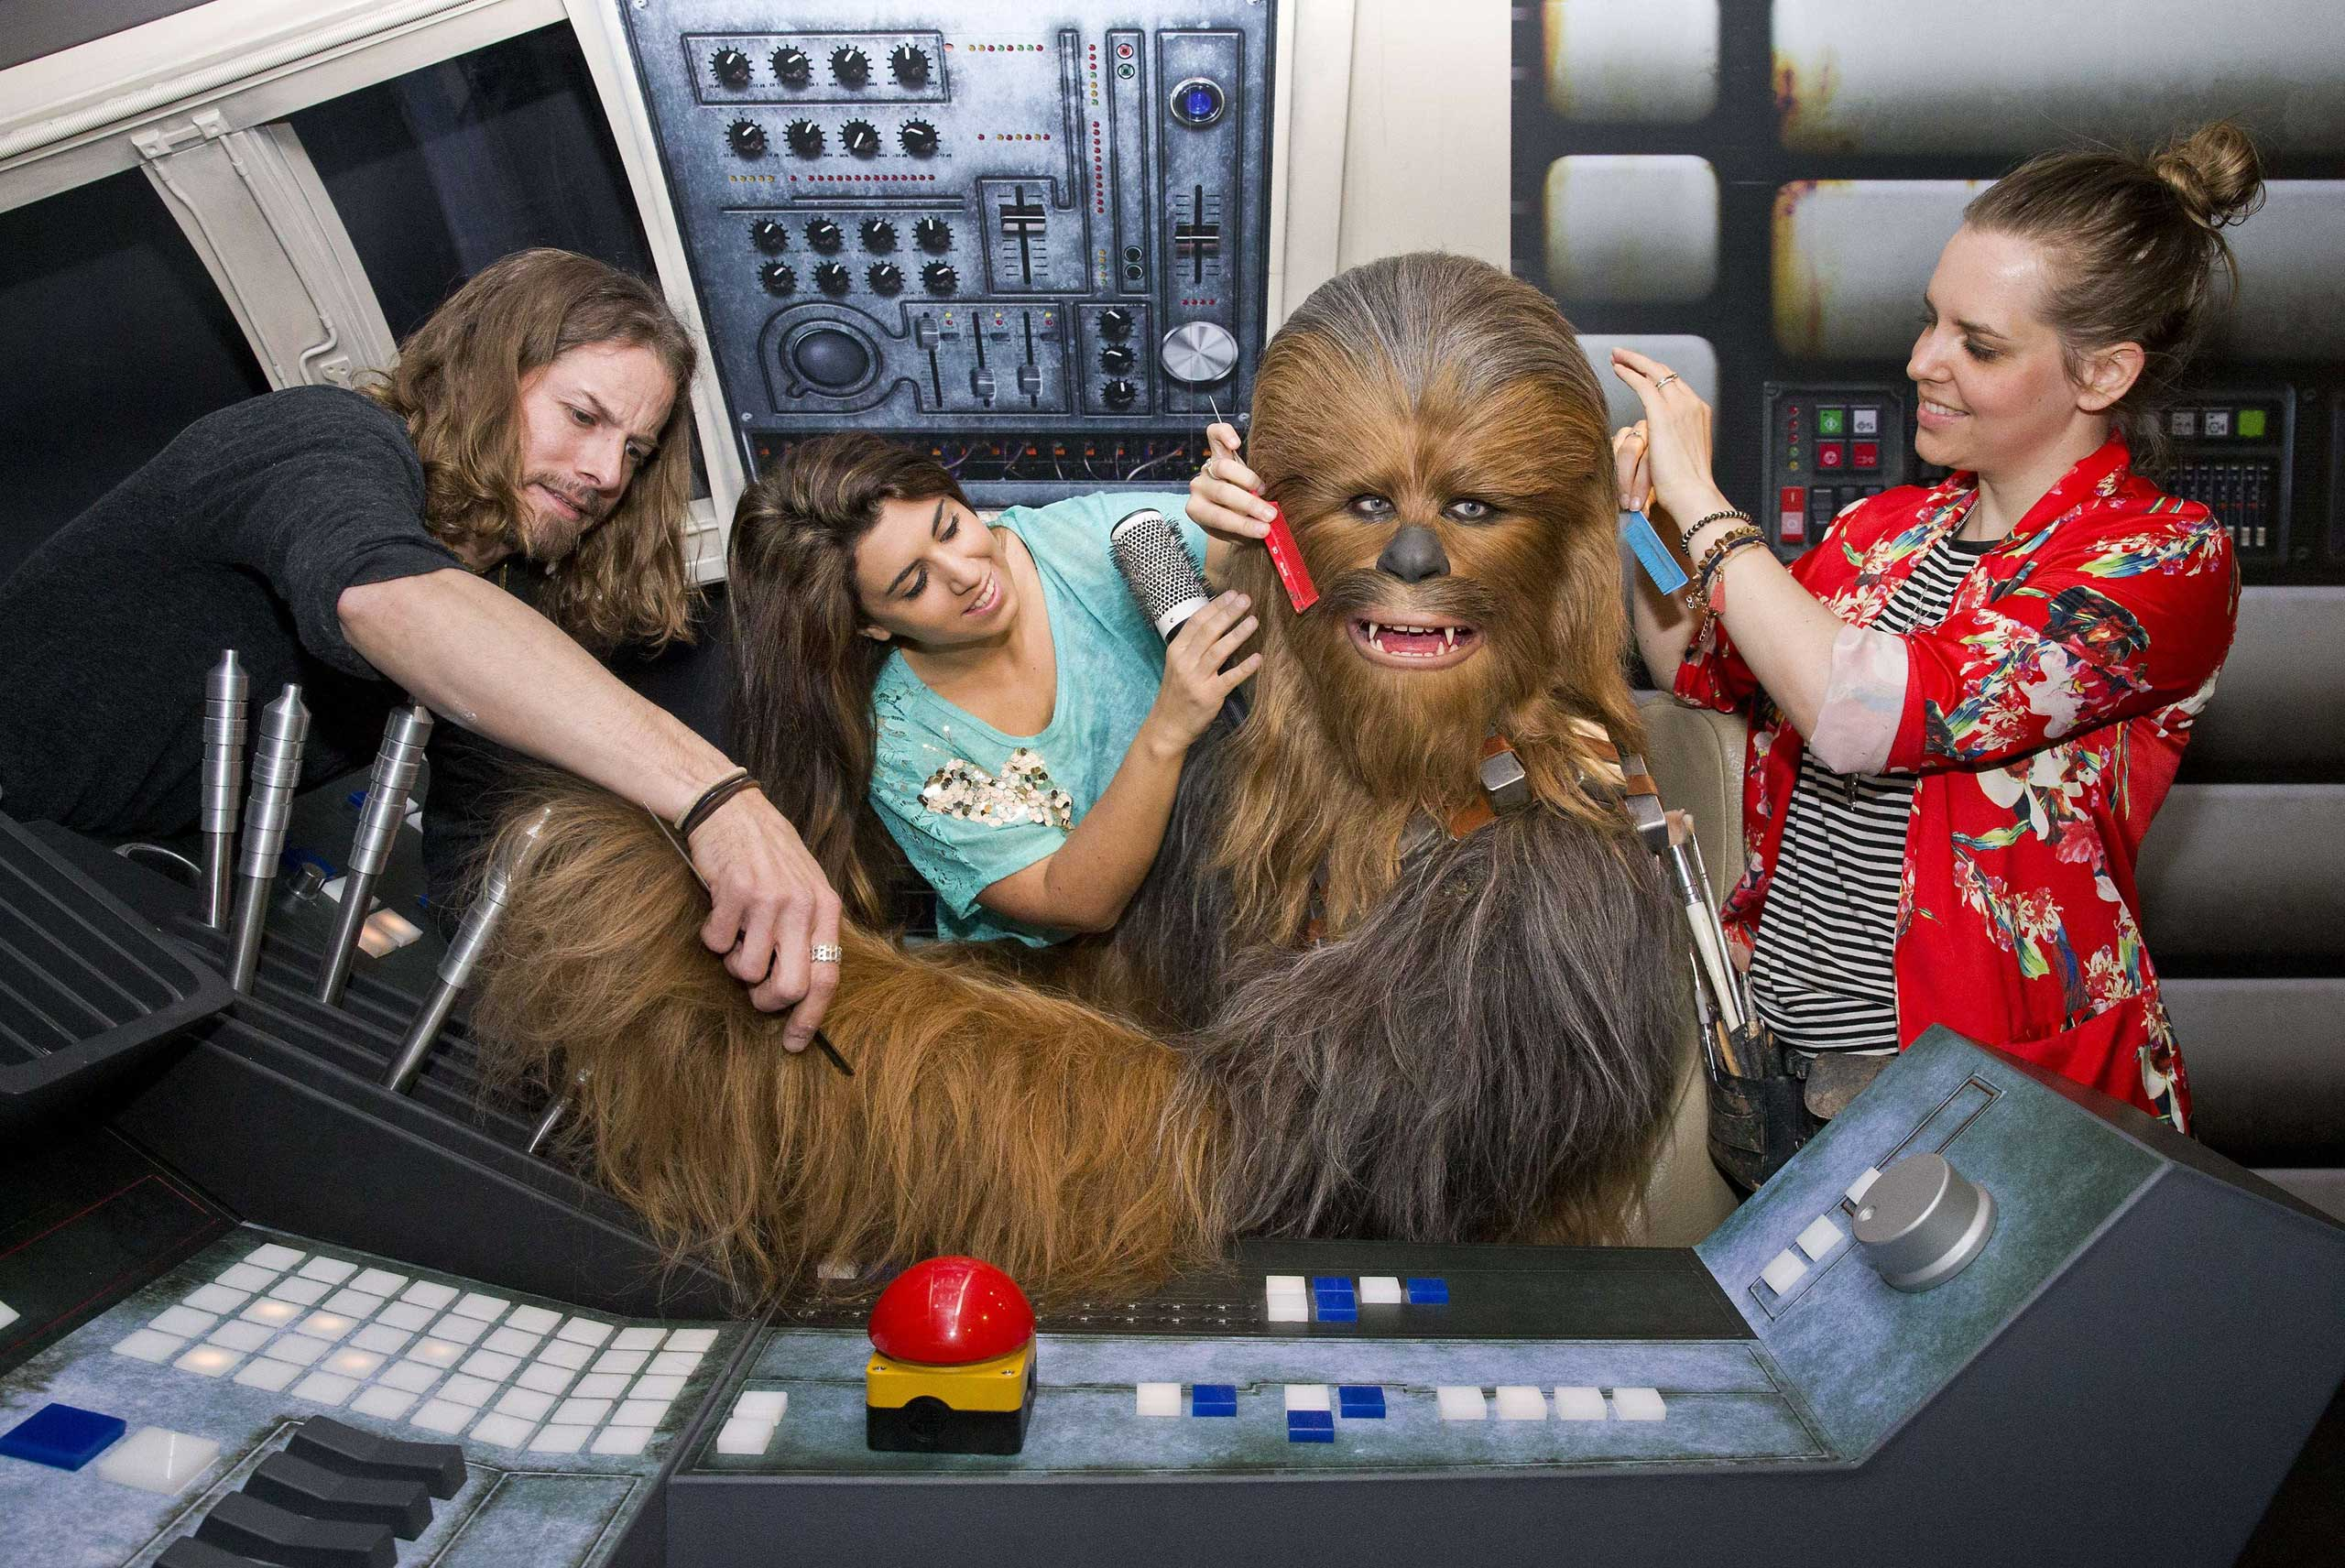 Members of staff put the finishing touches to the wax figure of Star Wars character Chewbacca at the Star Wars At Madame Tussauds attraction in London on May 12, 2015.